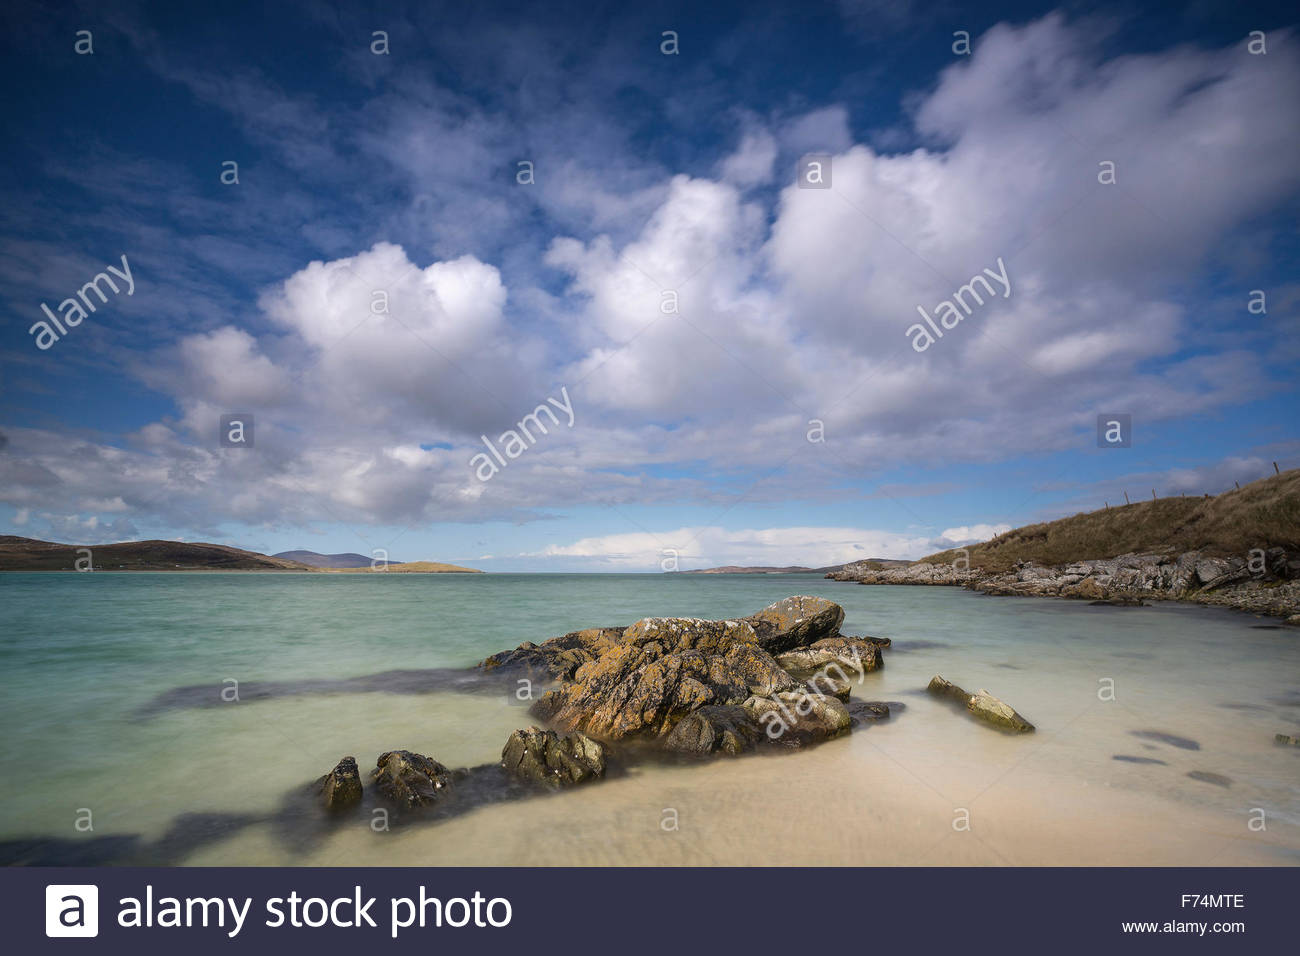 The coastline and sky at Luskentyre, Isle of Harris, Outer Hebrides, Scotland Stock Photo